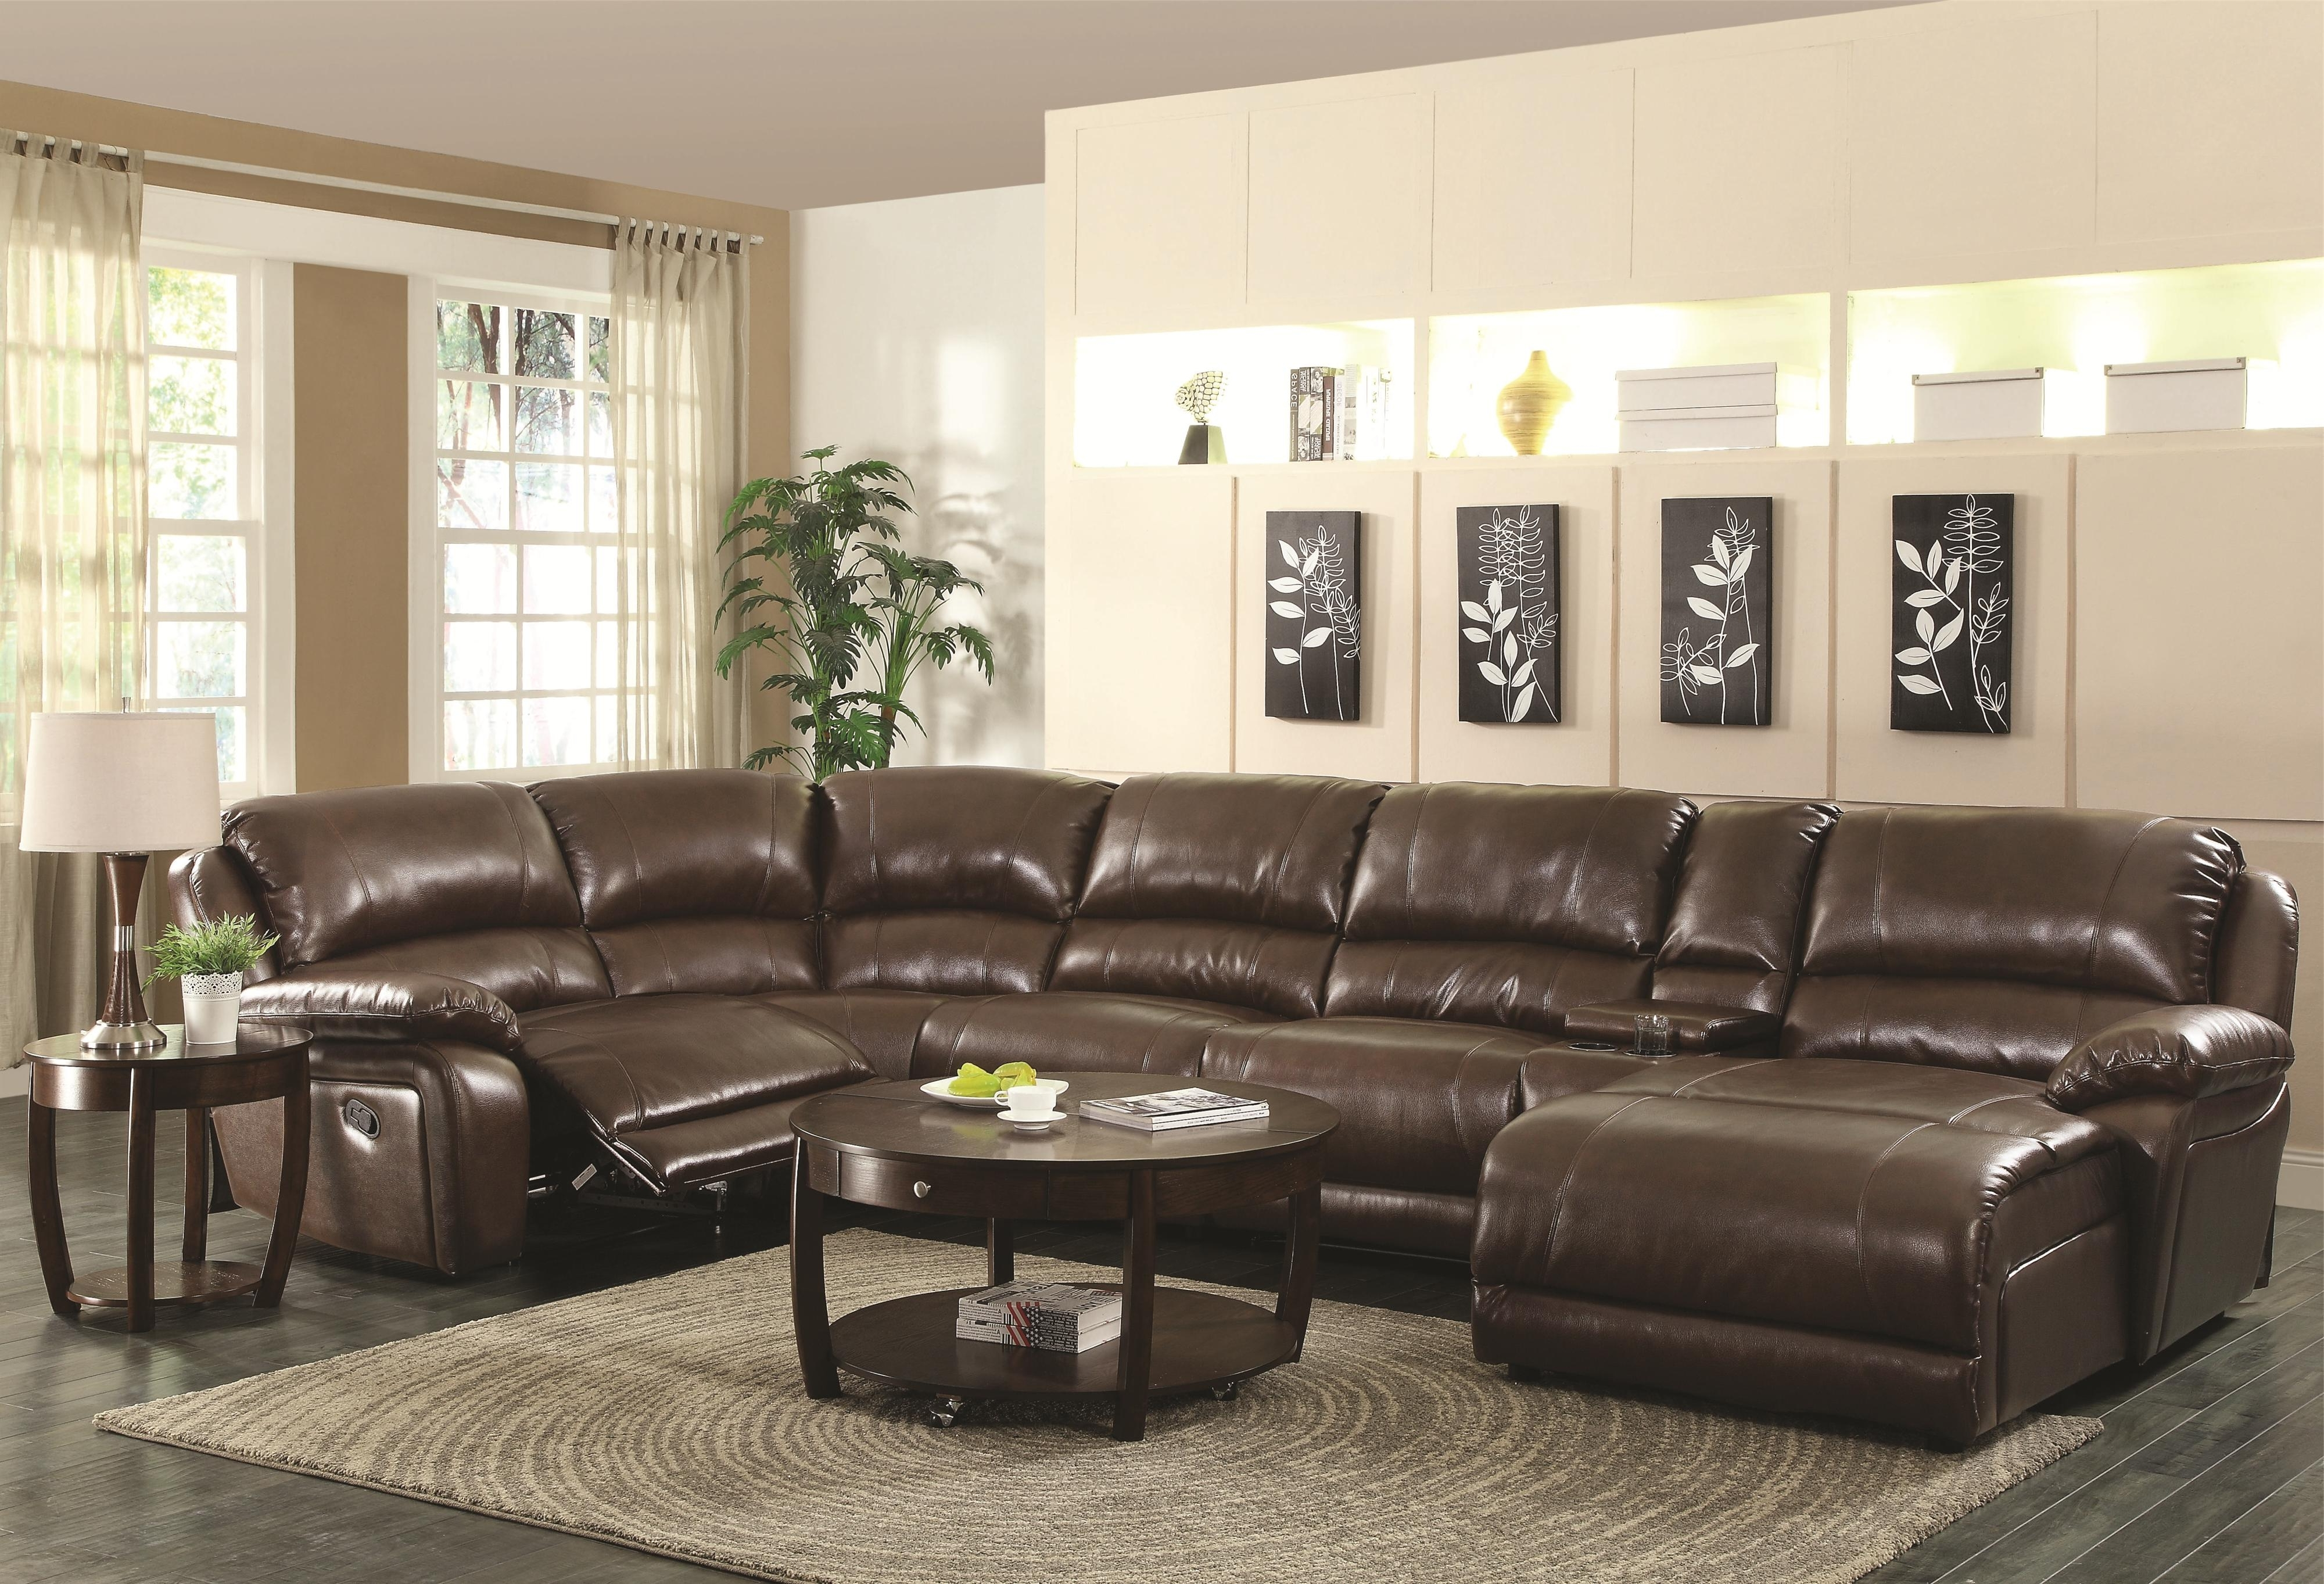 Widely Used Recliners Chairs & Sofa : Interior Espresso Brown Leather Inside Curved Sectional Sofas With Recliner (View 14 of 15)